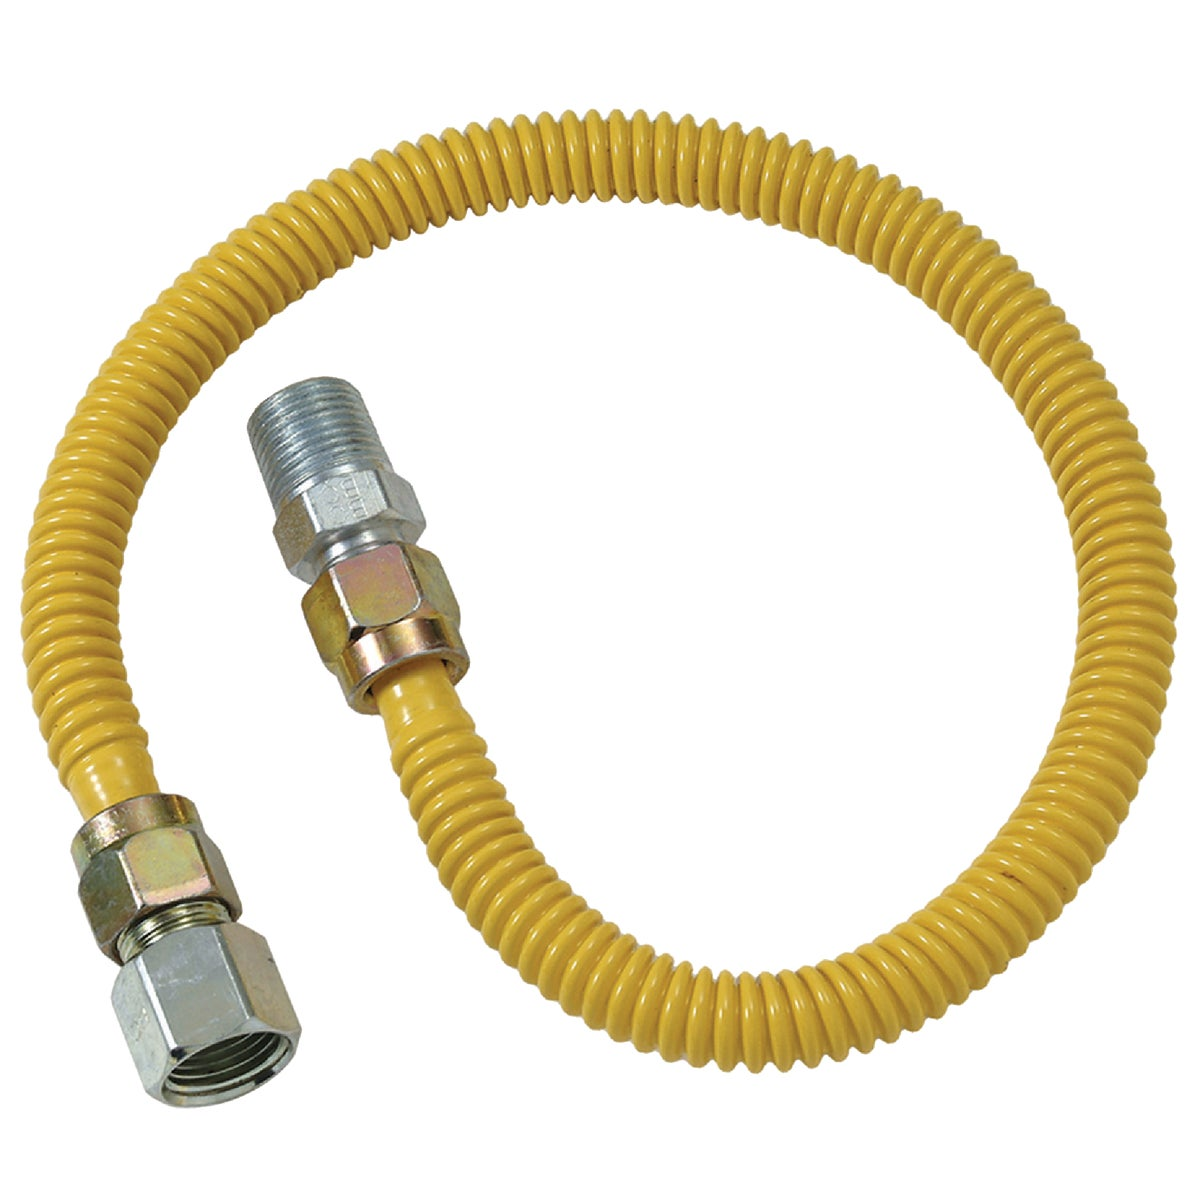 1/2X60 GAS CONNECTOR